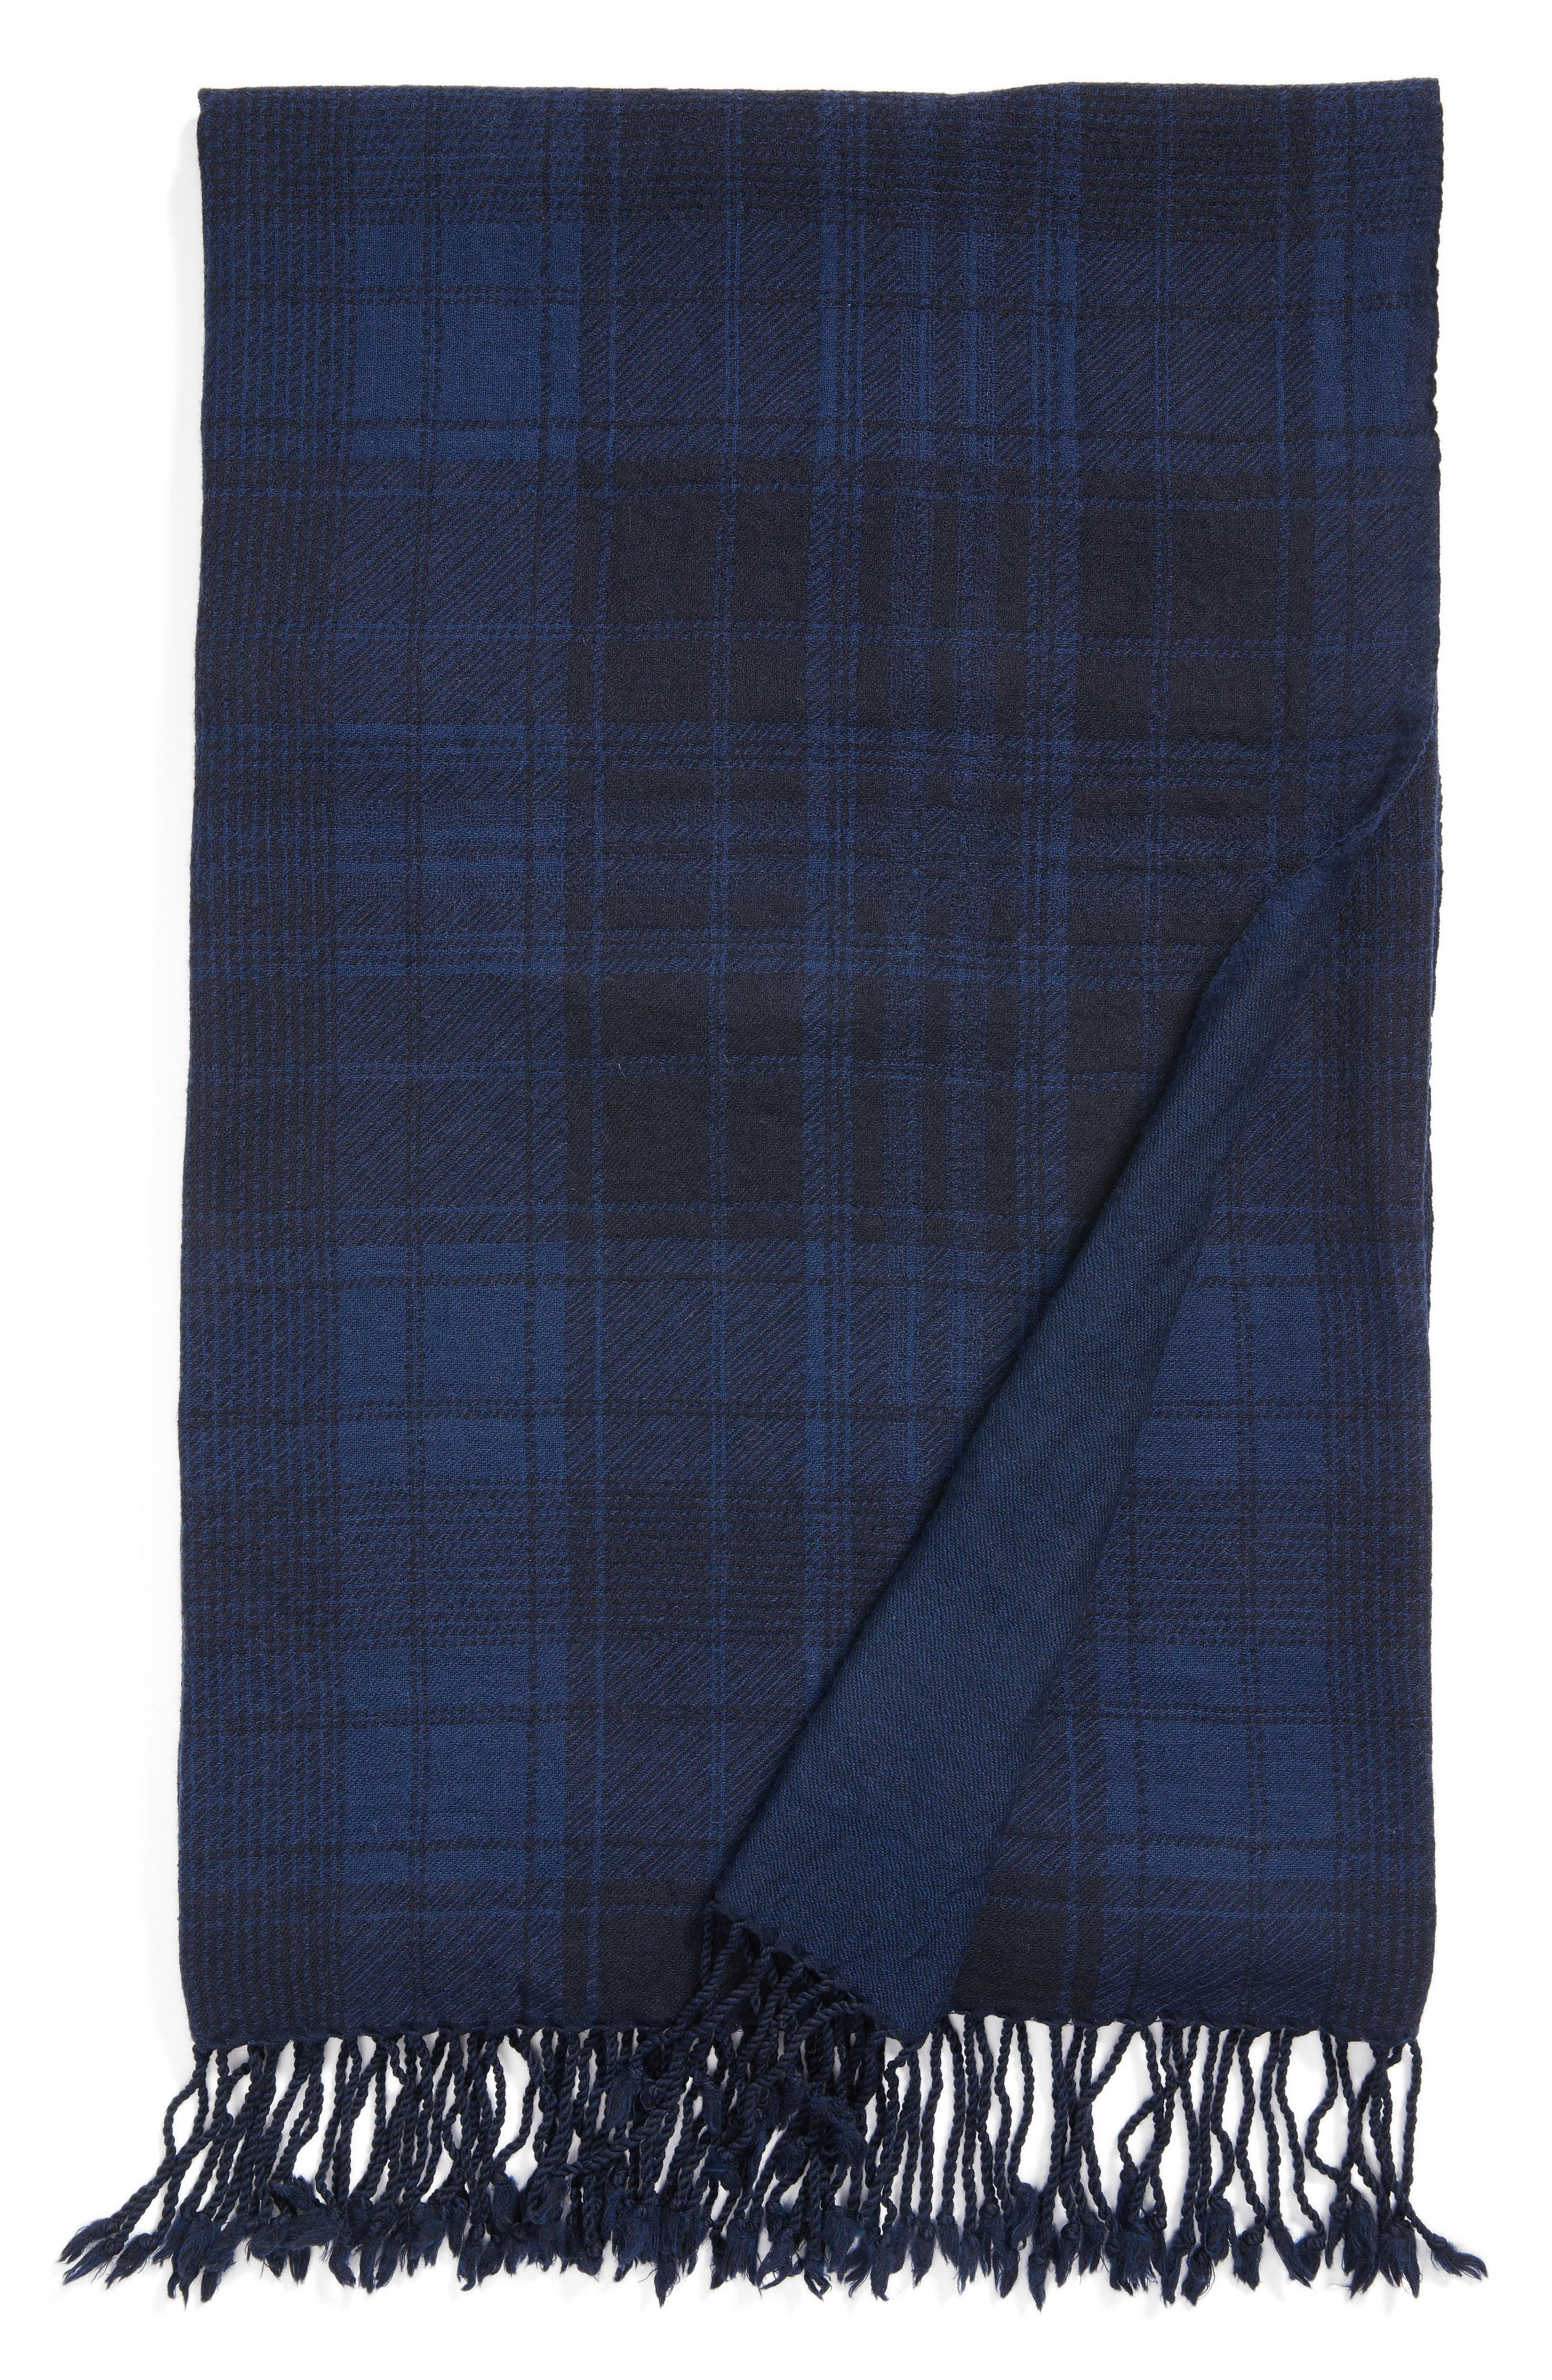 Plaid Double Face Merino Wool Throw,                             Main thumbnail 1, color,                             405